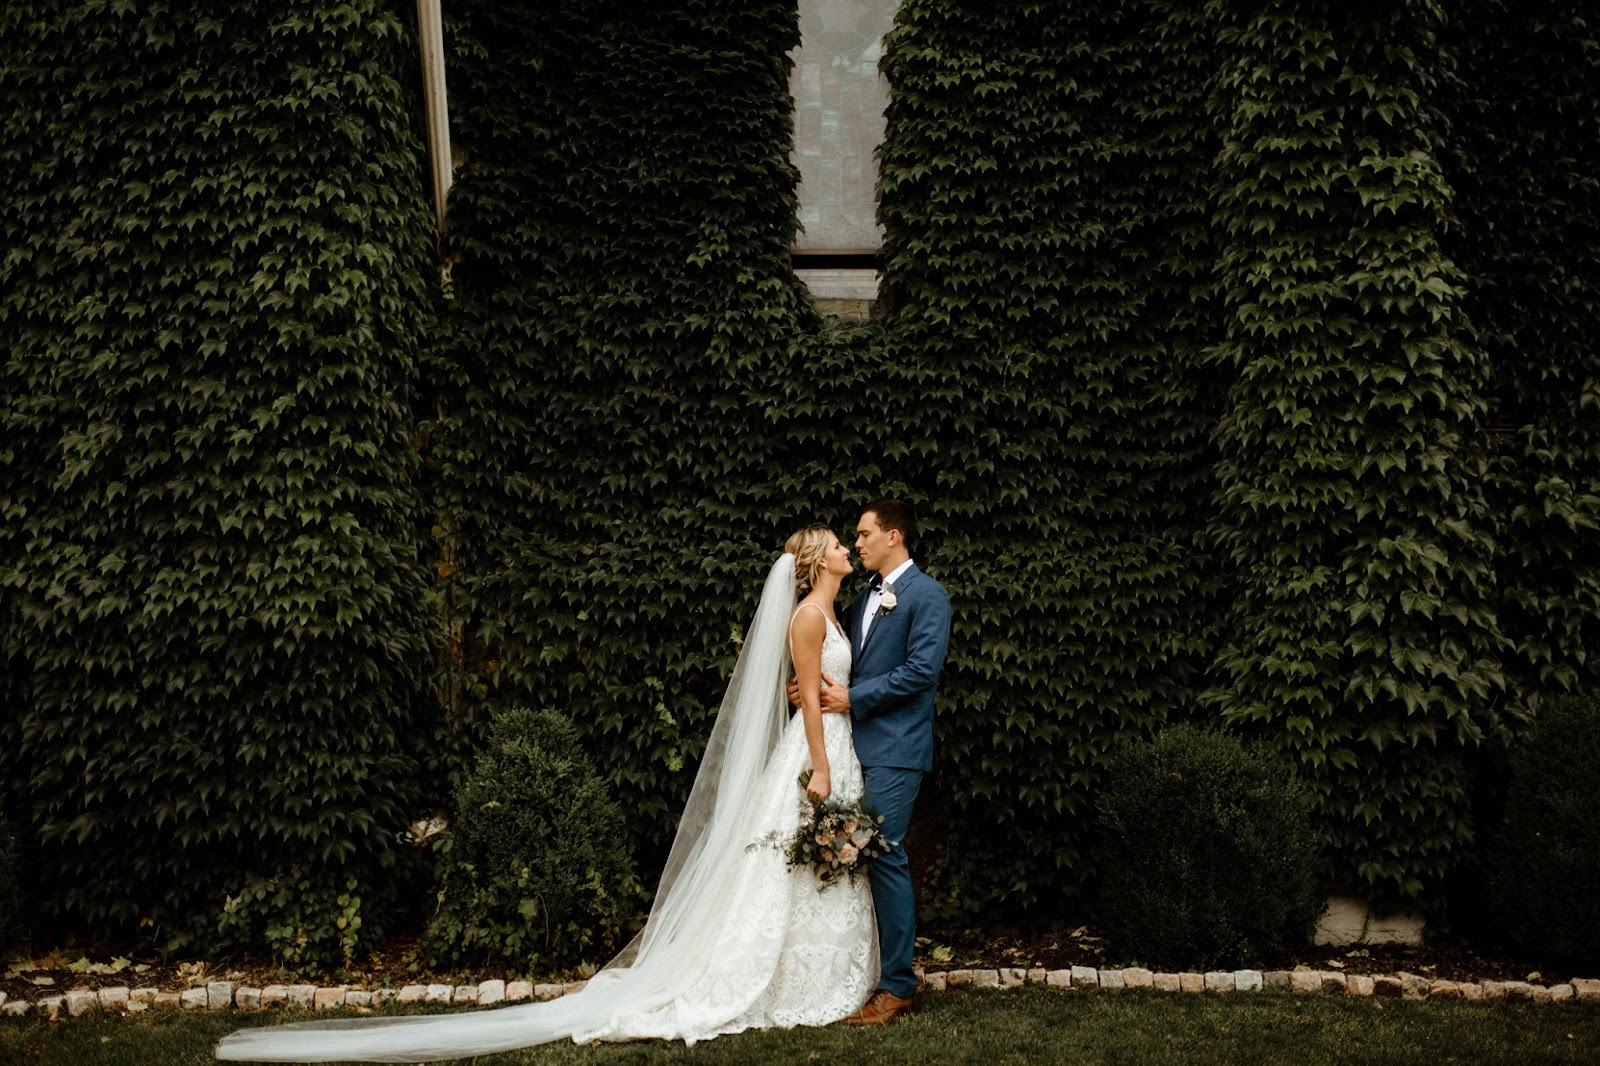 small wedding venue couple in front of green vines and brick structure